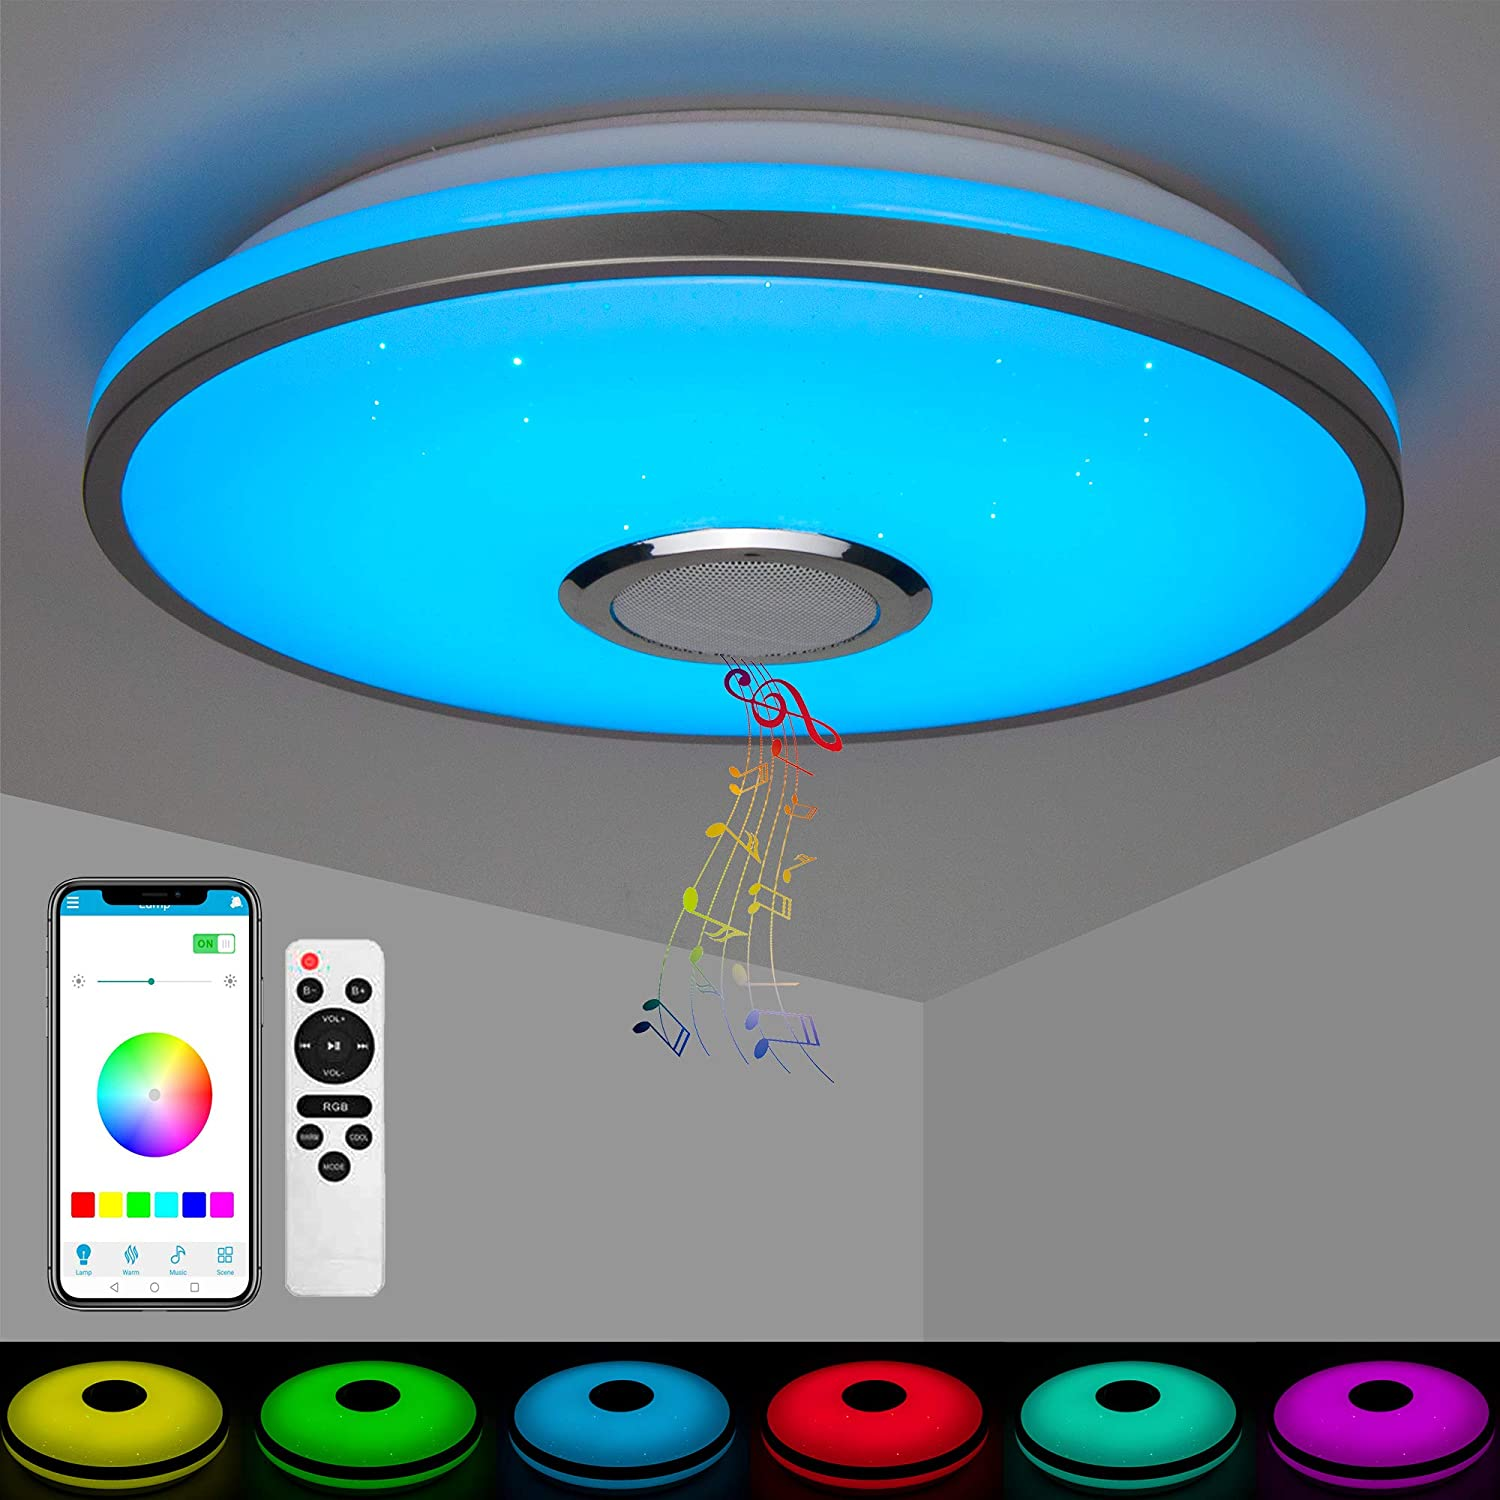 LED Music Ceiling Light with Bluetooth WiFi High Sound Quality Speaker Smartphone APP and Remote Control WAS £39.99 NOW £31.99 w/code 6HA63CVA @ Amazon